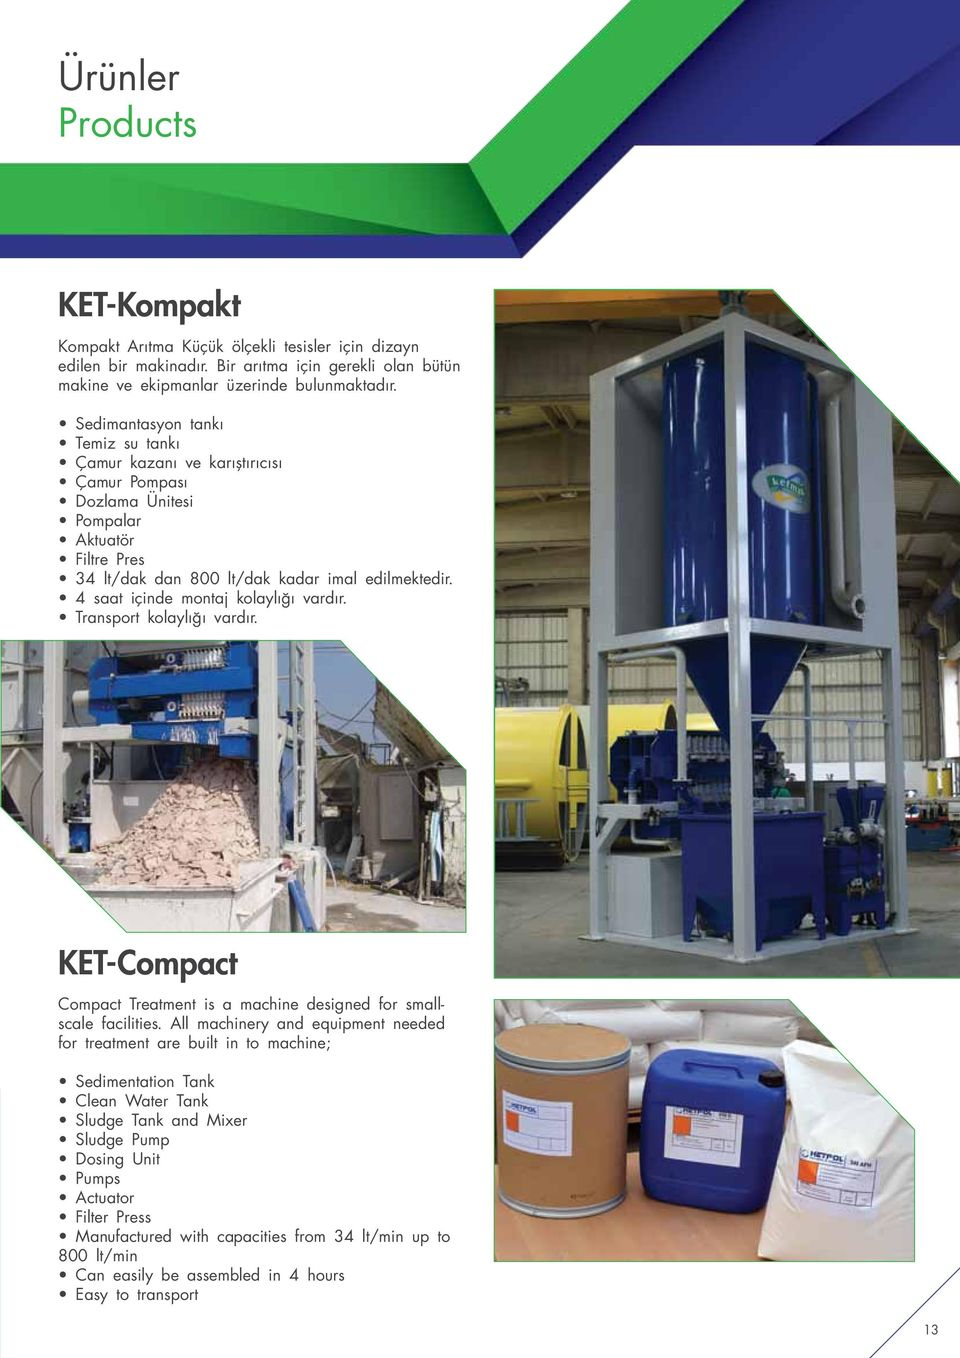 4 saat içinde montaj kolaylığı vardır. Transport kolaylığı vardır. KET-Compact Compact Treatment is a machine designed for smallscale facilities.